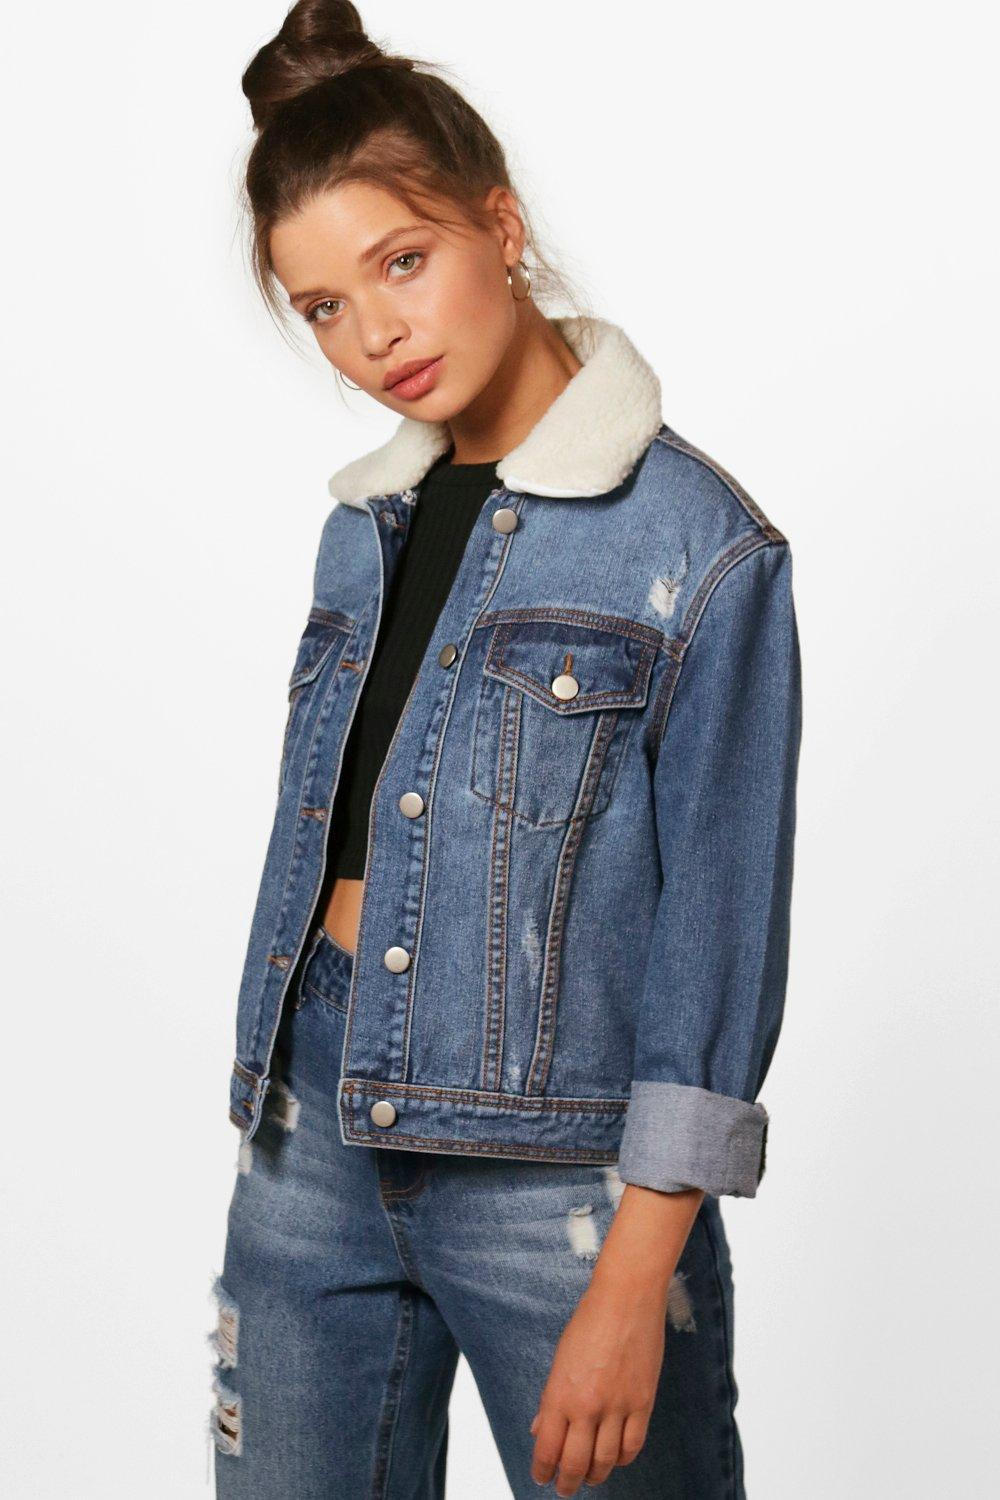 Collar Boohoo Slim Borg Fit Denim Jacket 4X4qEwKUBx